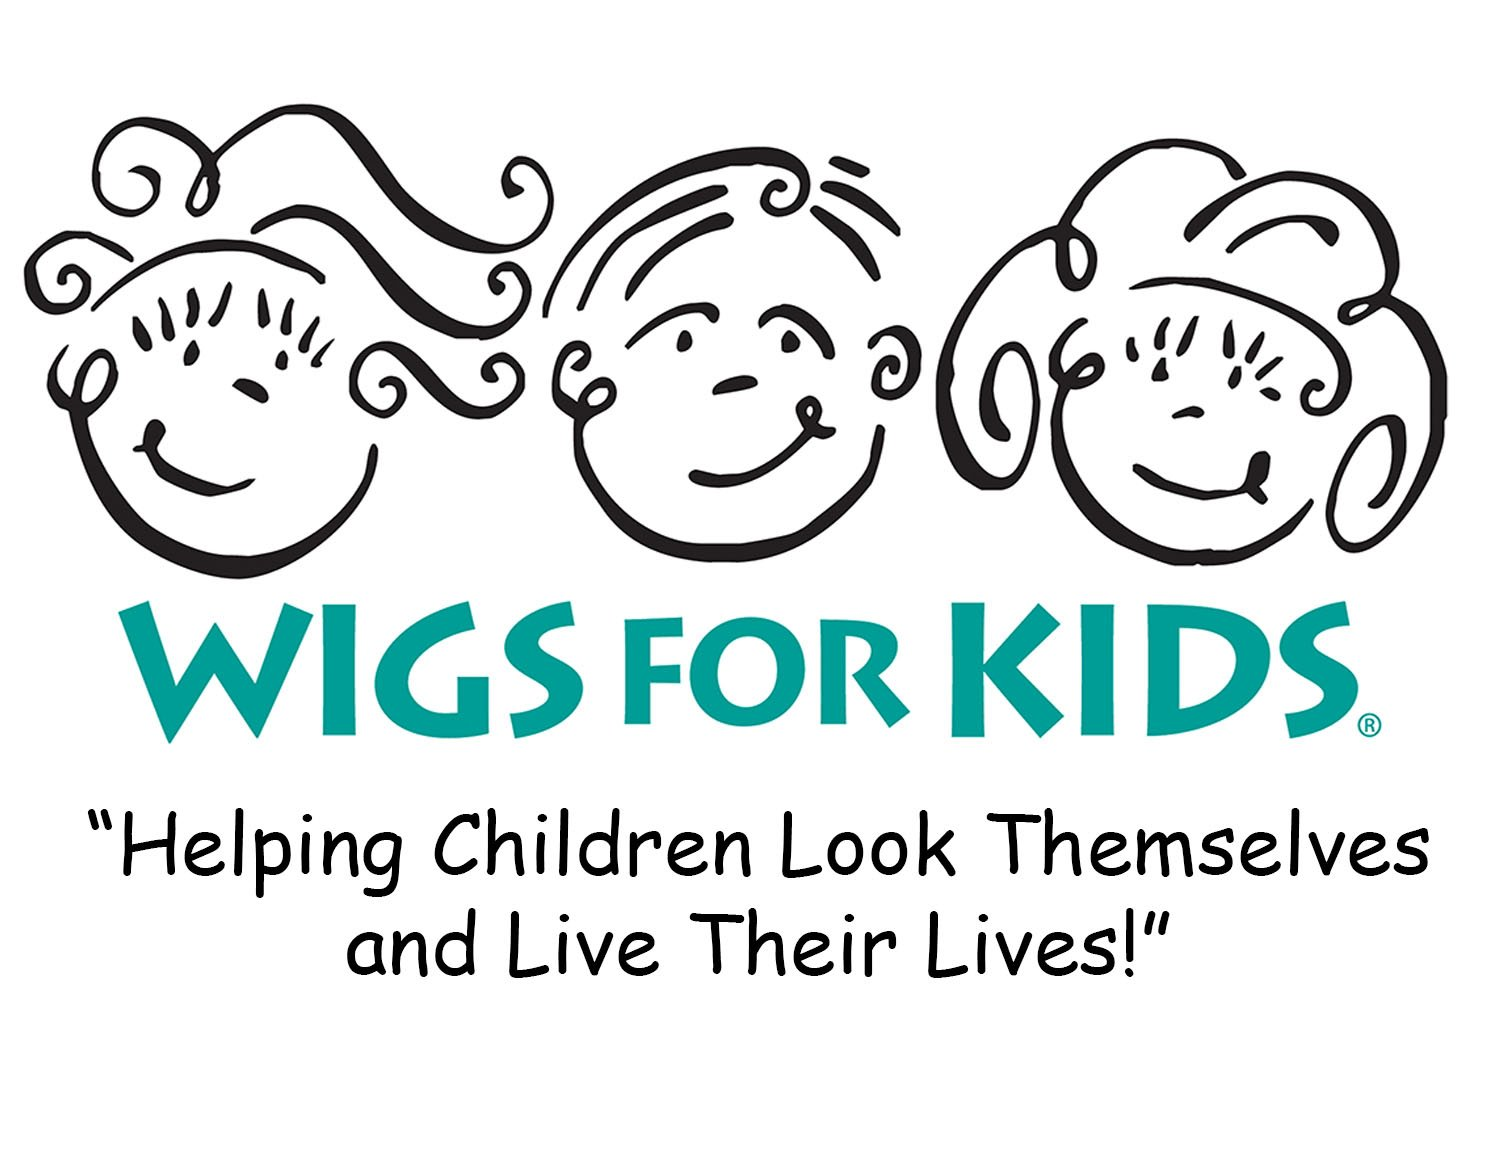 Ambassador for Wigs for Kids